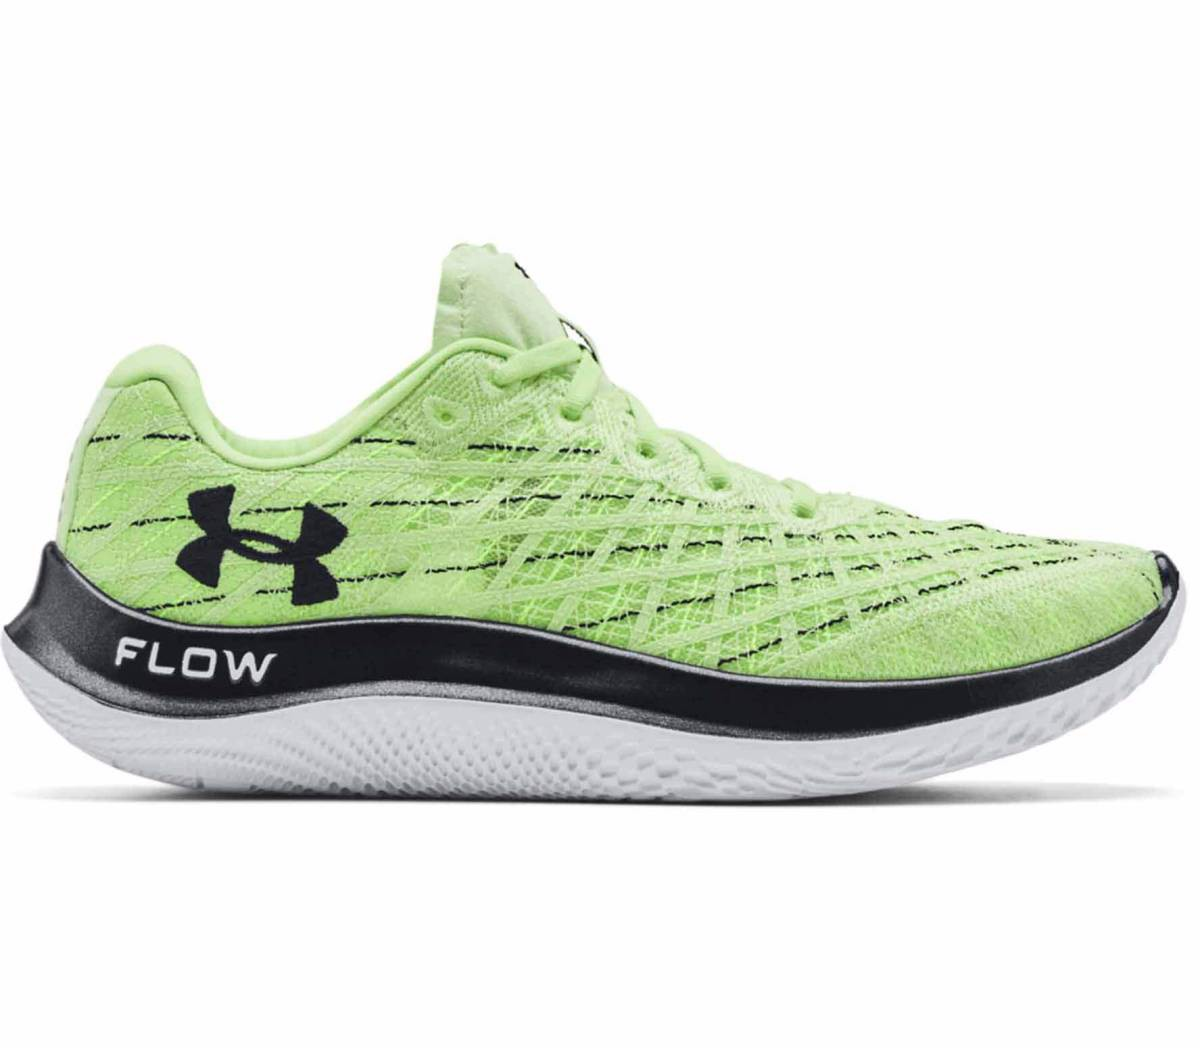 Under Armour - Giày chạy bộ nam Flow Velociti Wind Running SS21-3023